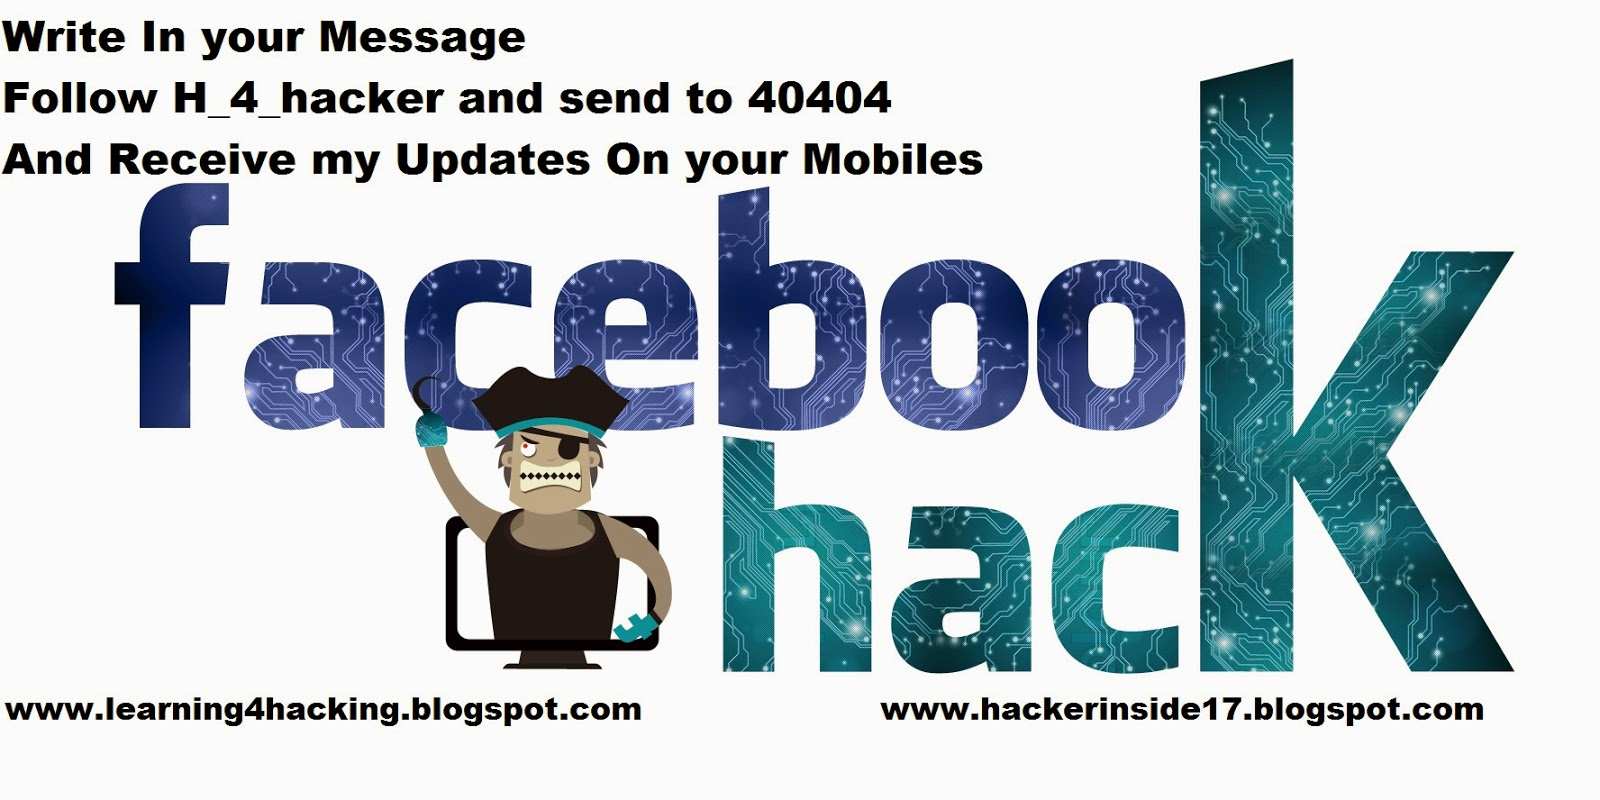 How to hack facebook account video tutorial complete a to z how to hack facebook account complete a to z details with hd urdu video tutorial step by step with free hosting account simple watch the video and follow baditri Image collections